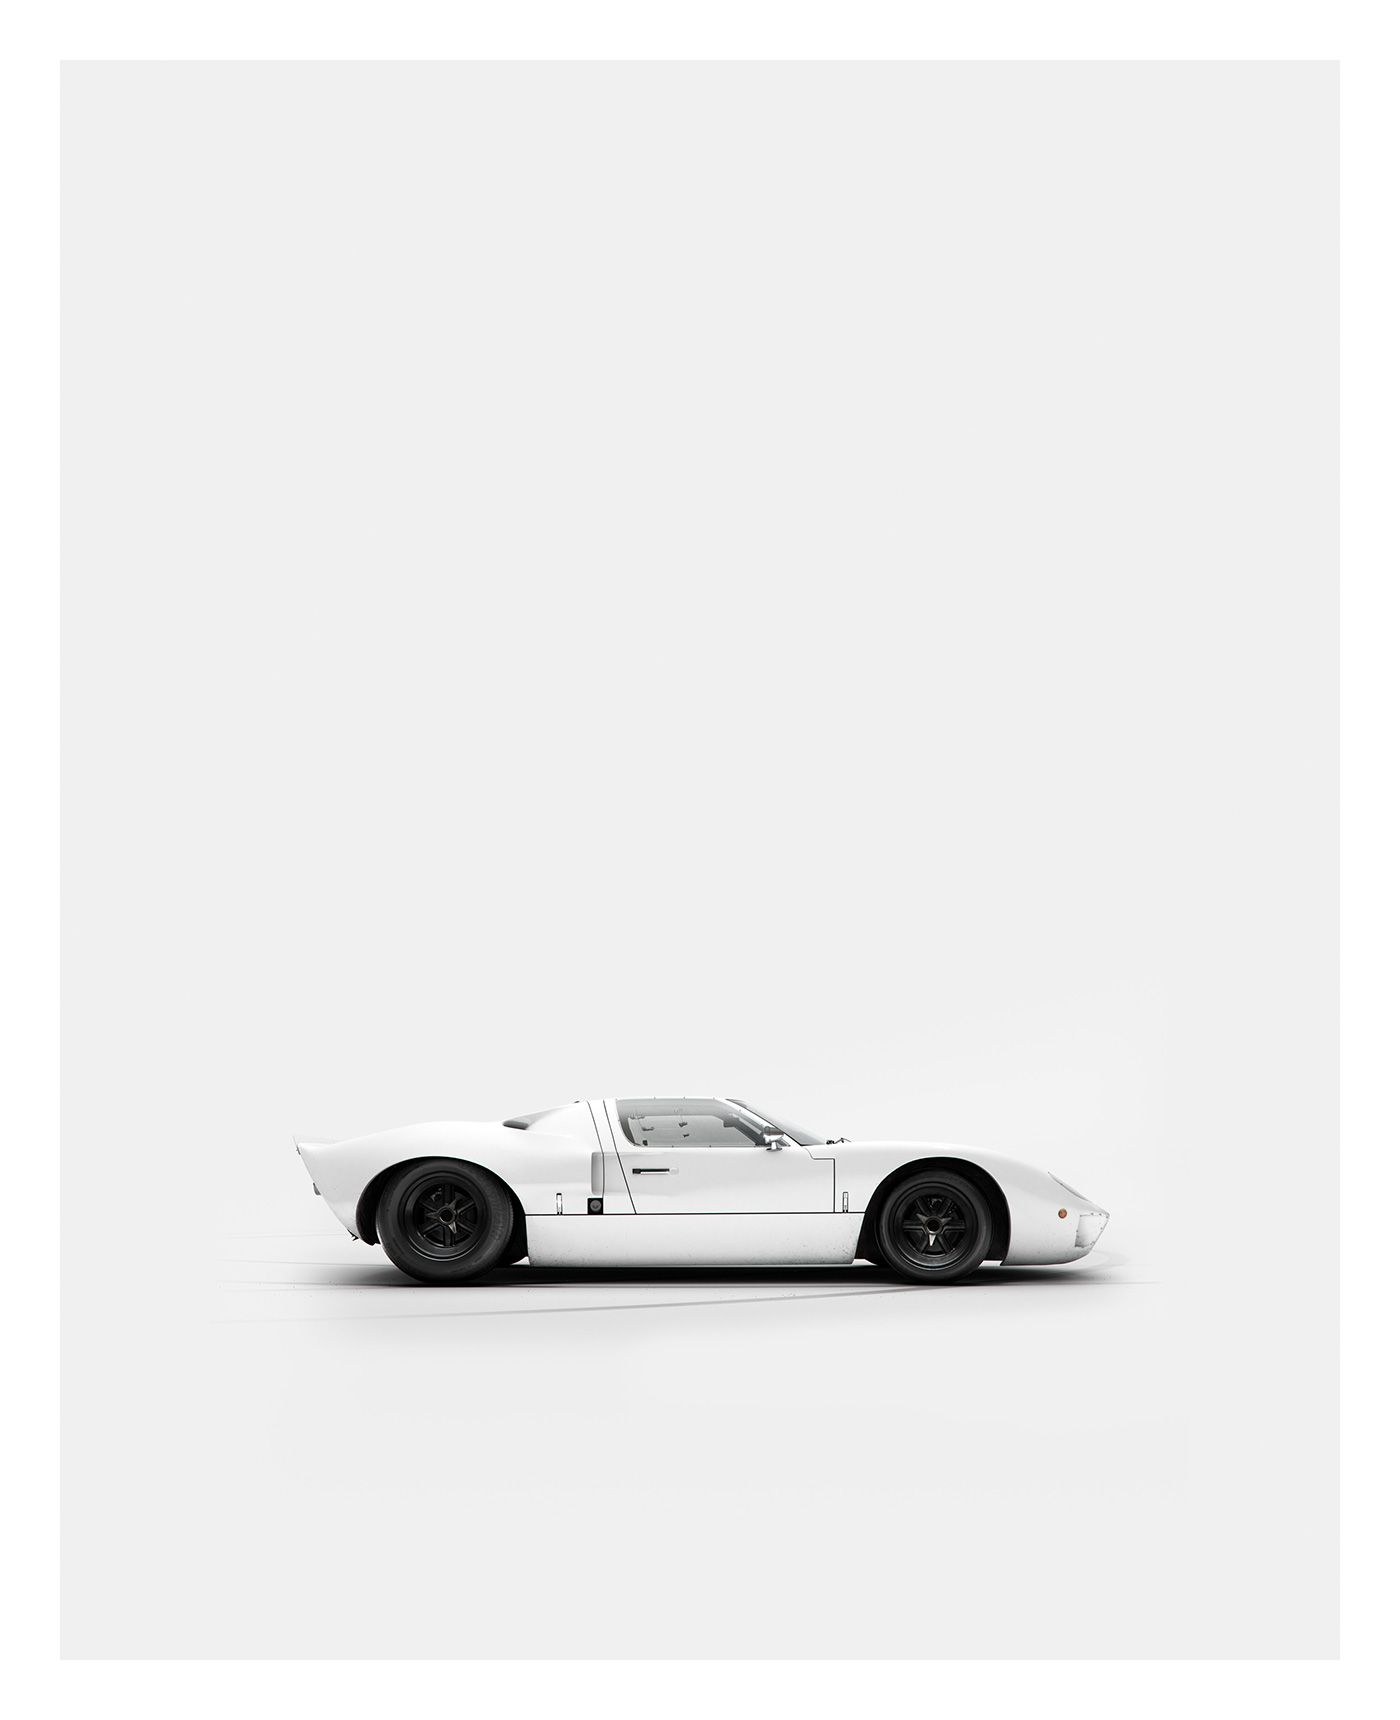 Ford gt40 by ink studio abduzeedo cars motos pinterest